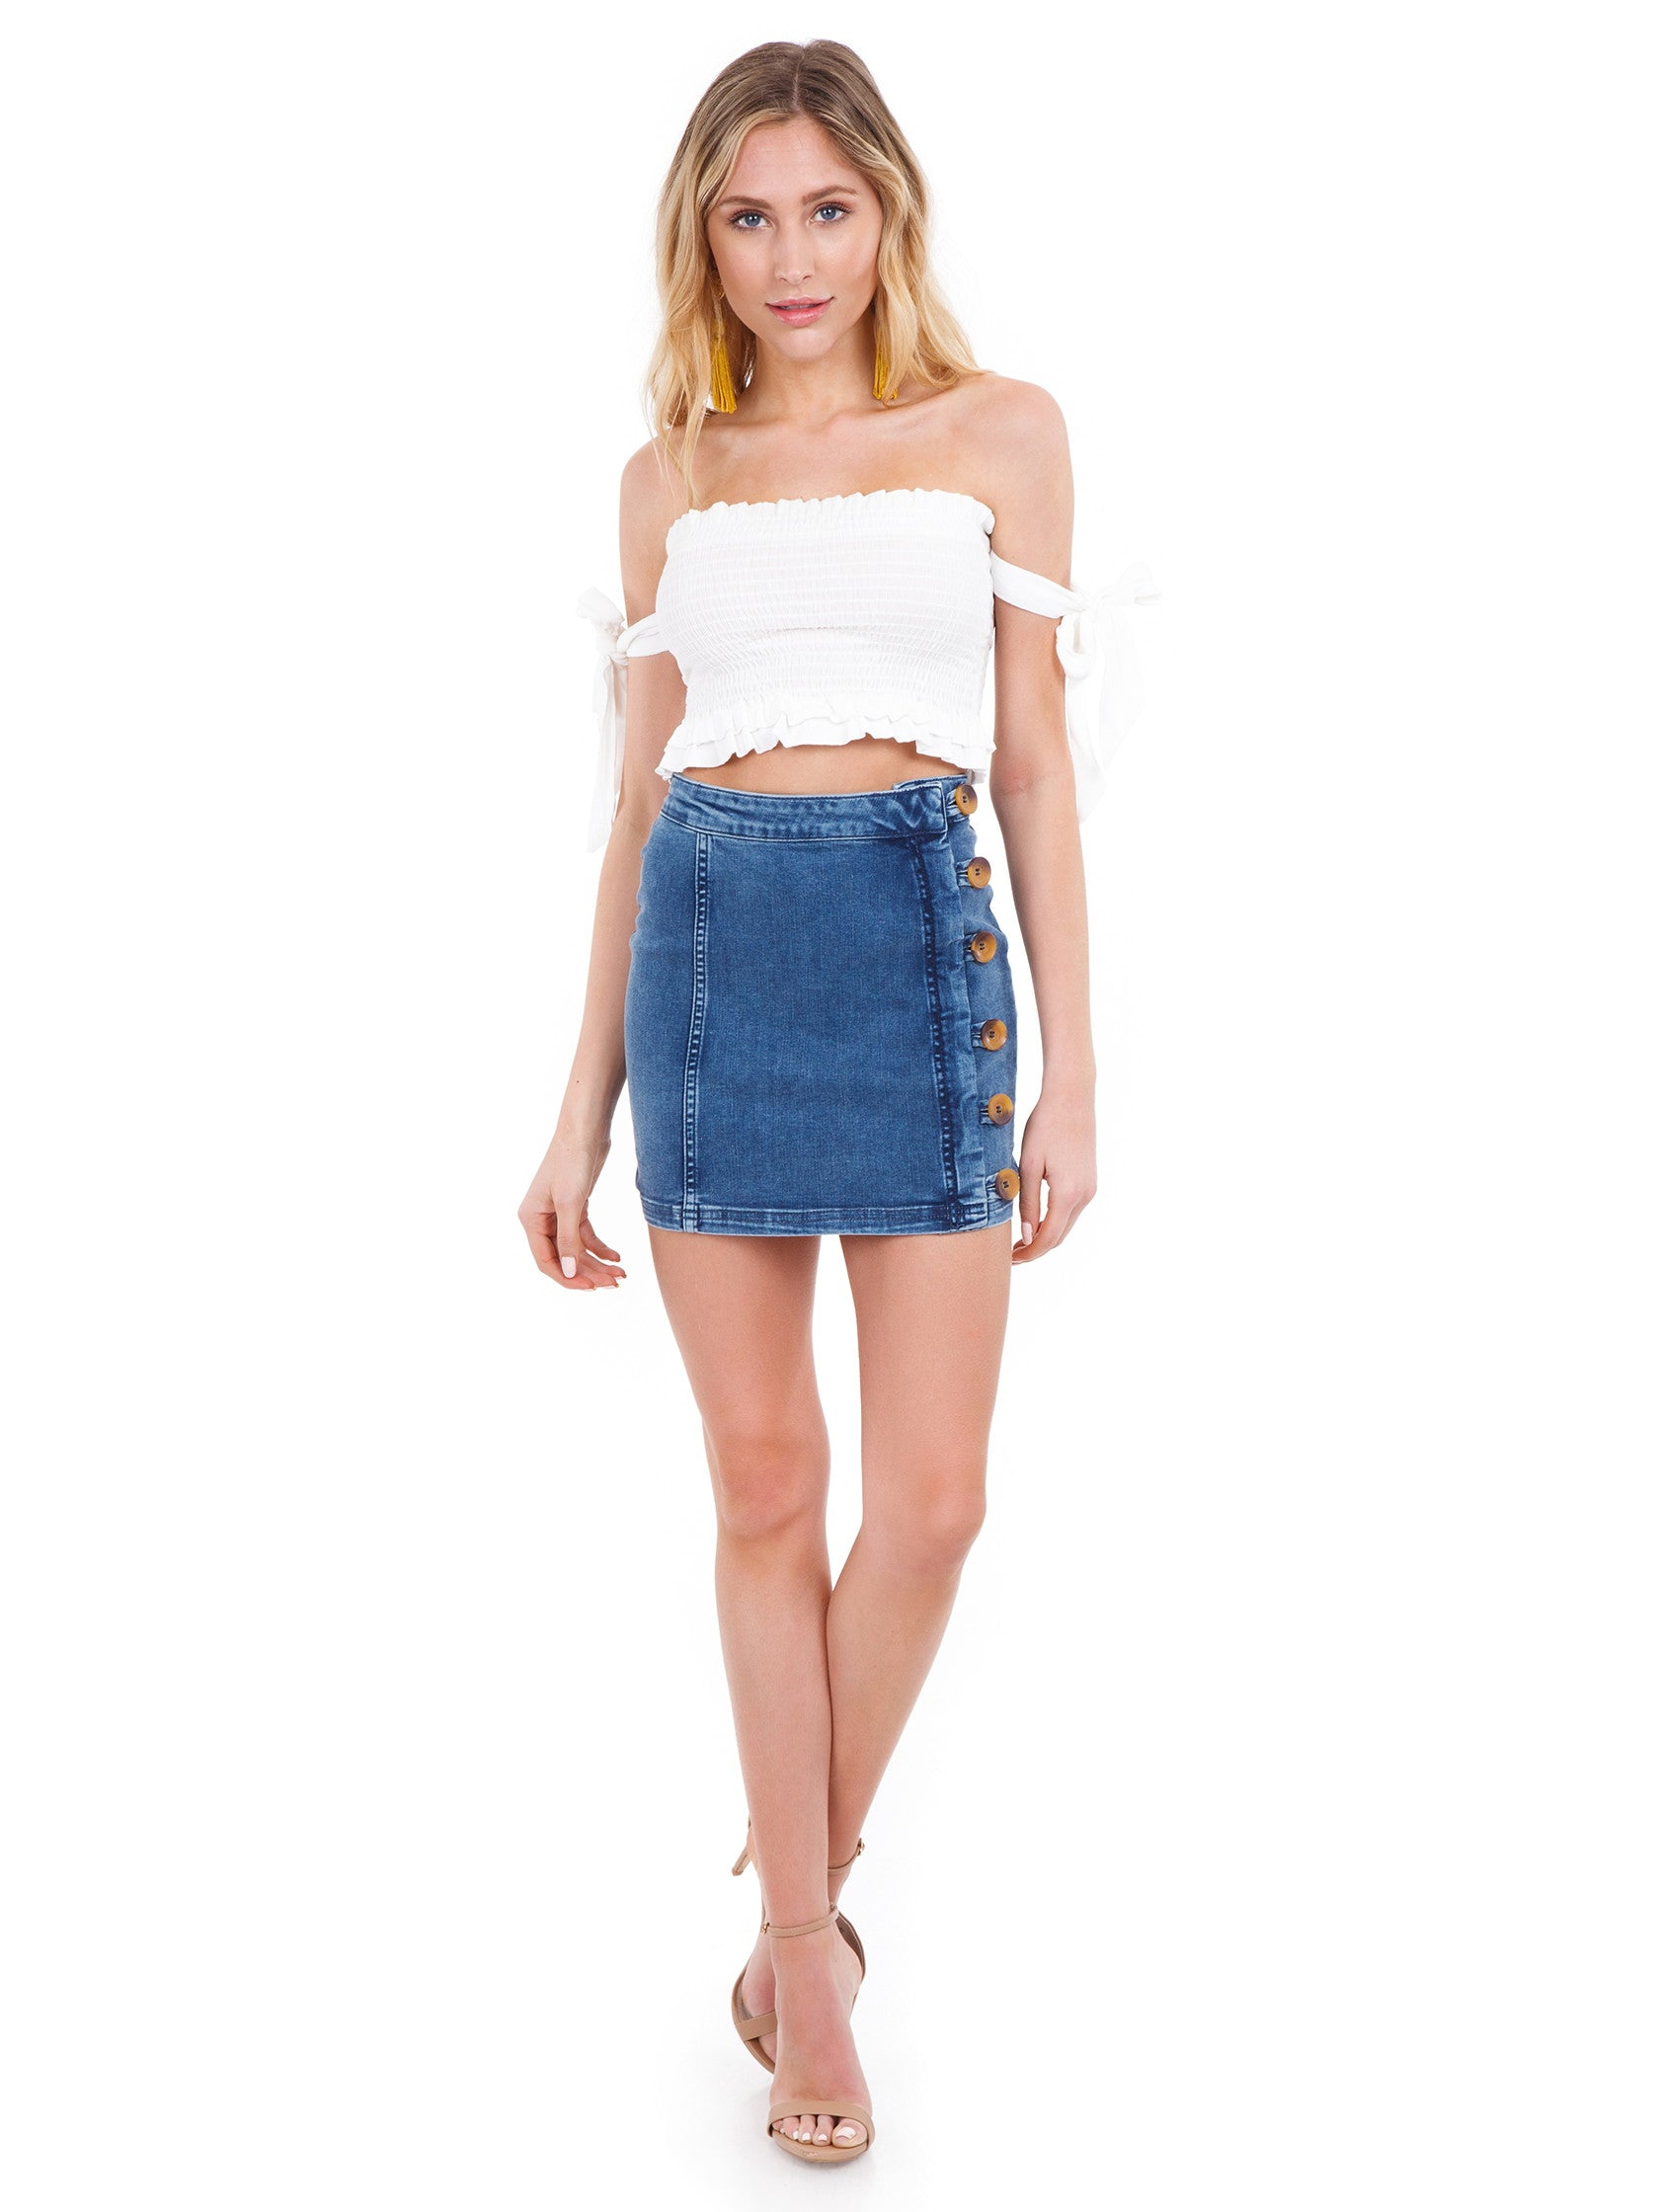 Girl outfit in a skirt rental from Free People called Little Daisies Denim Mini Skirt